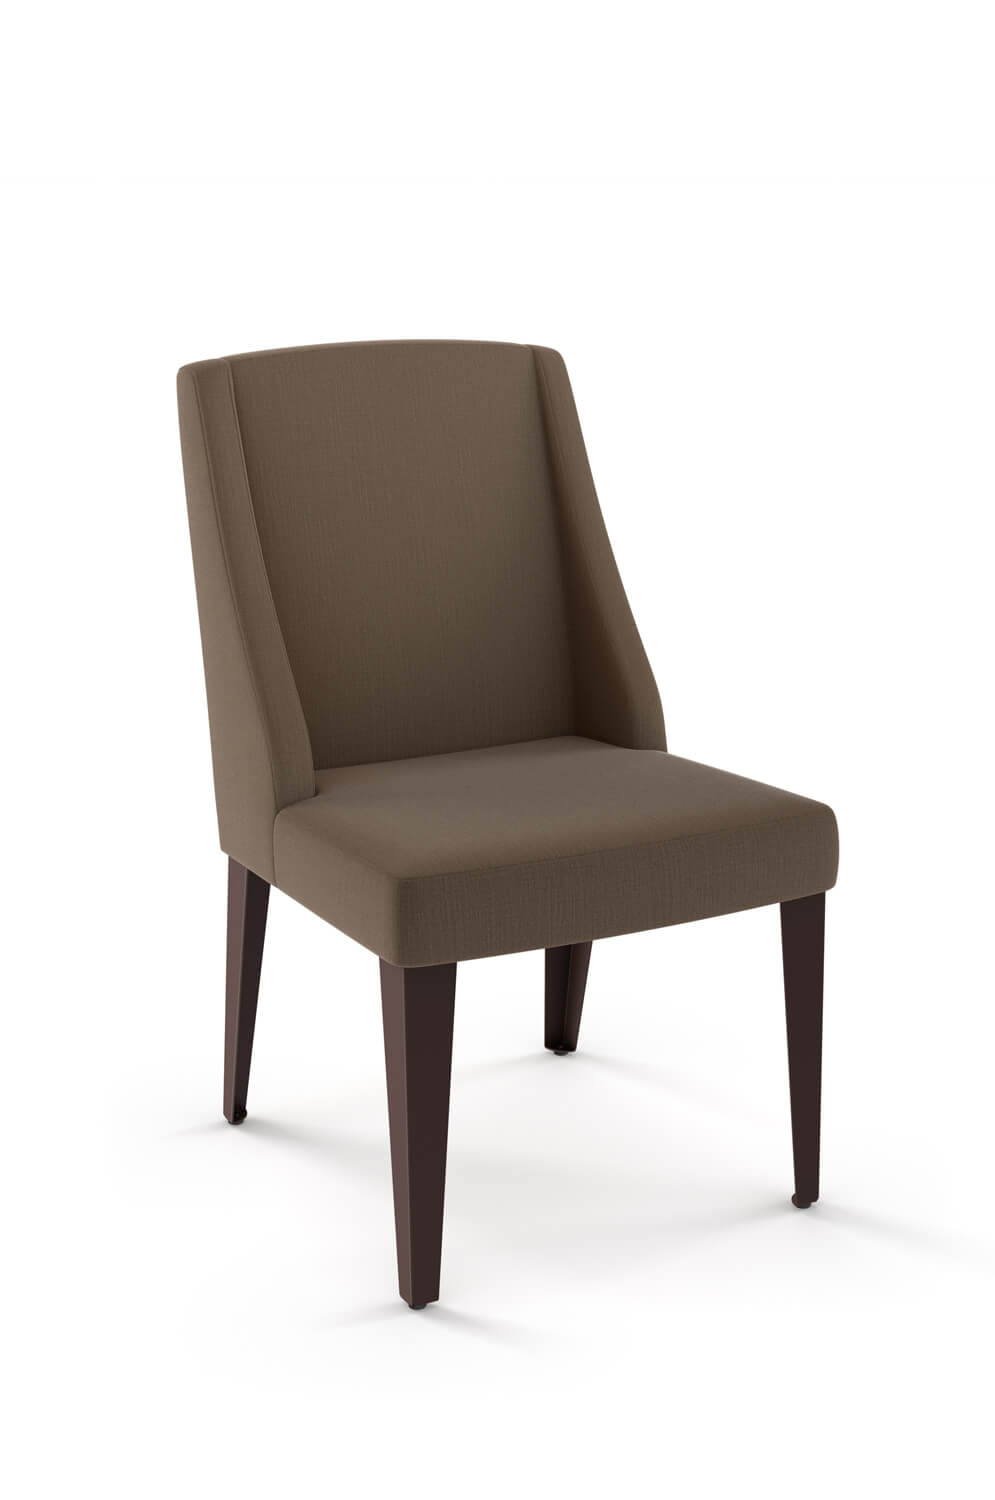 Bridget Upholstered Dining Chair